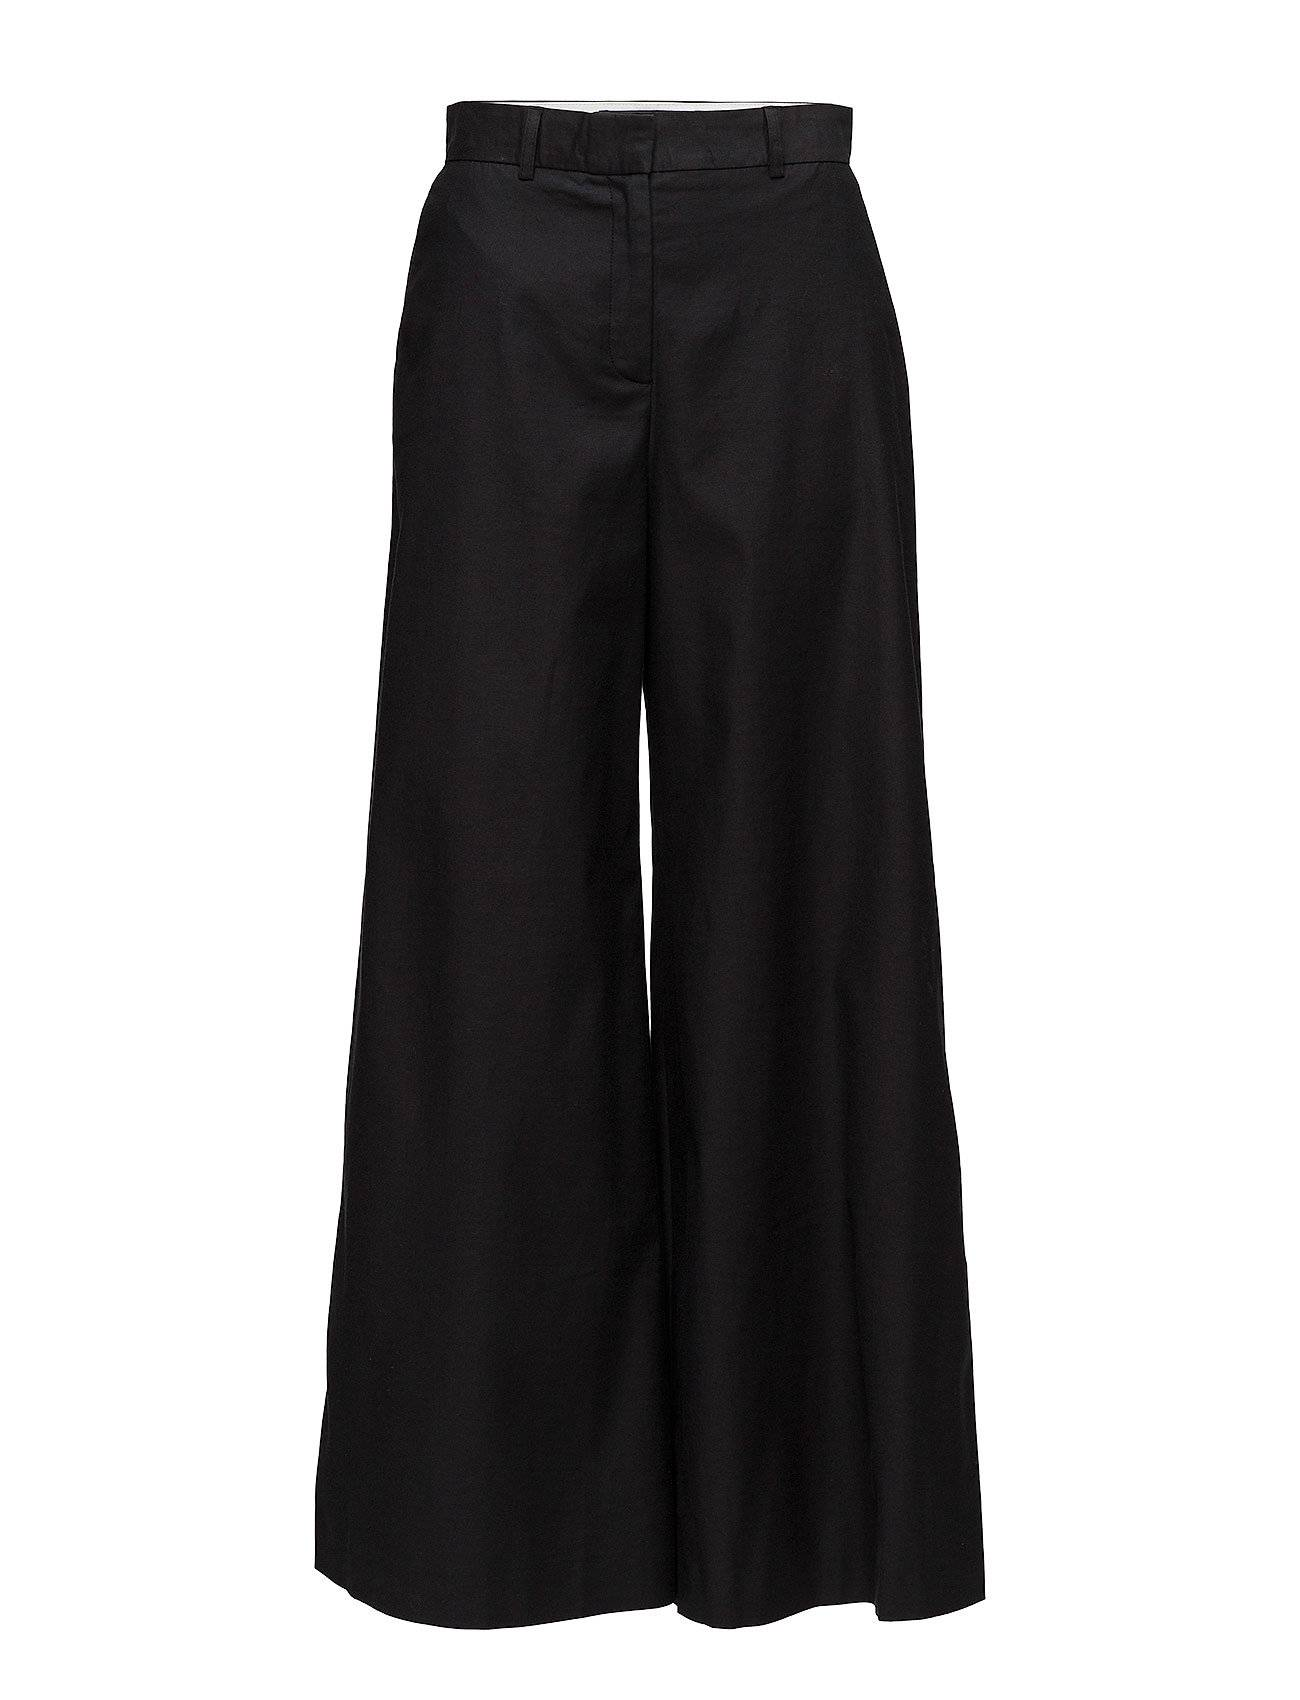 French Connection Ria Cotton Flare Trouser